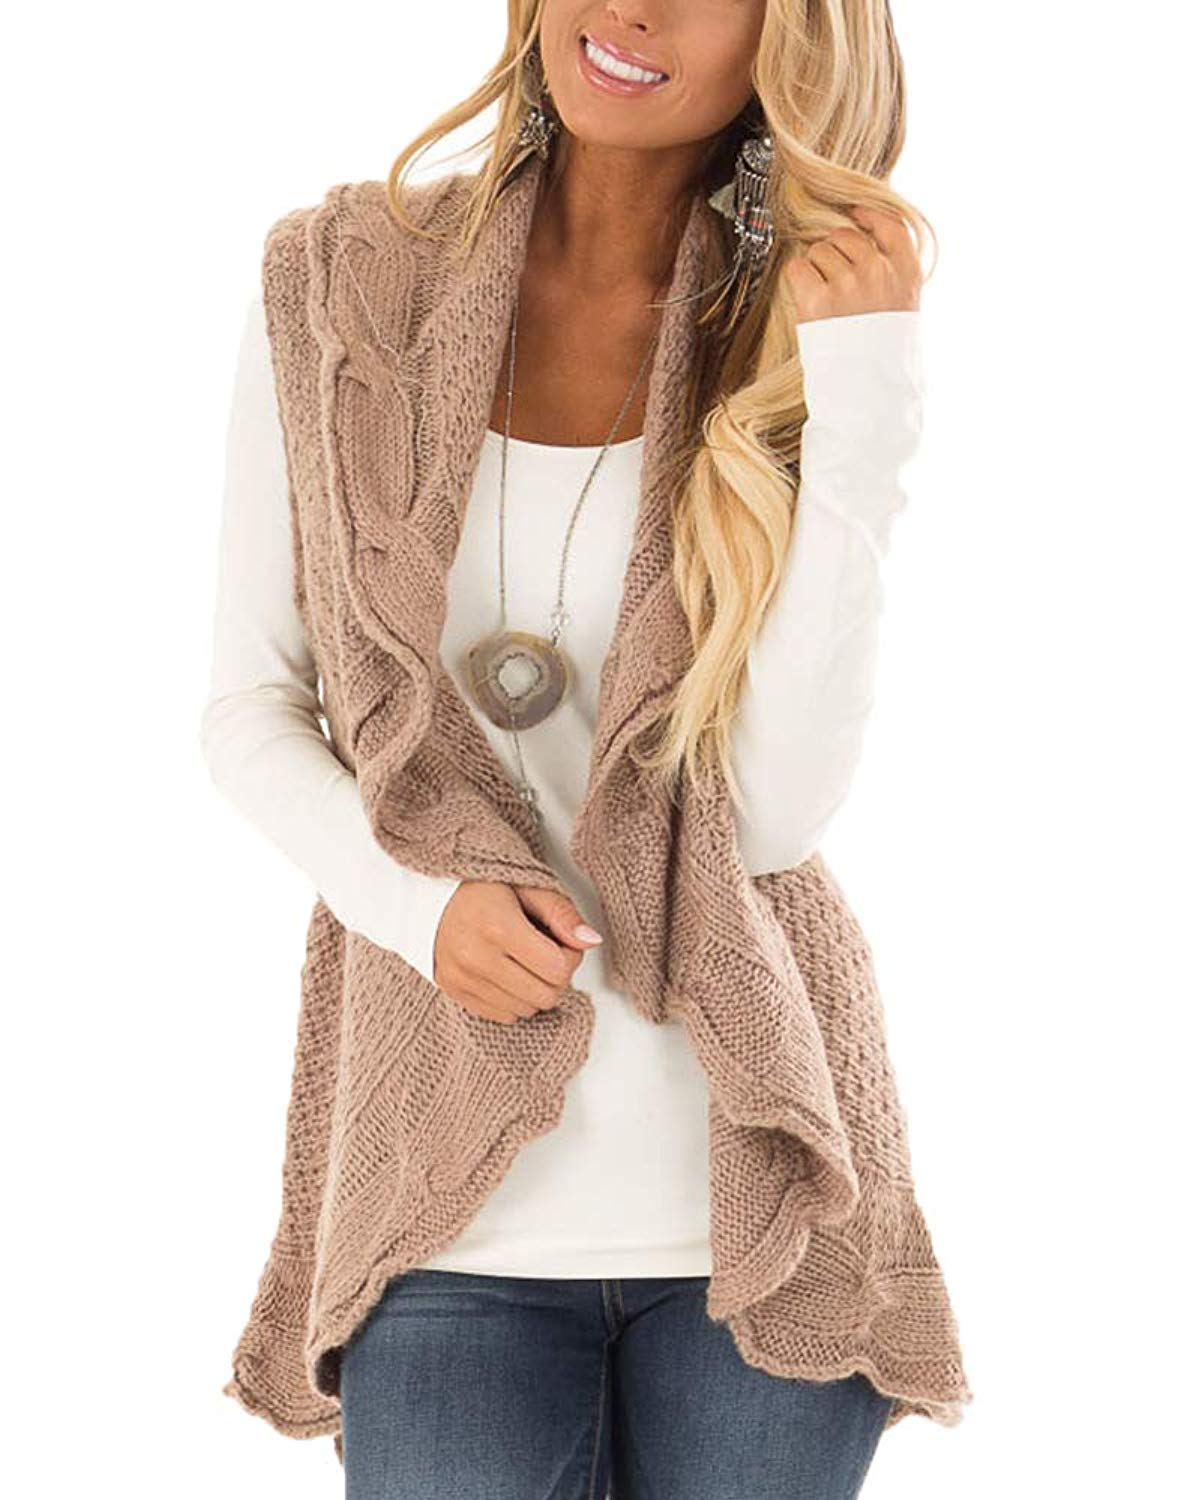 dbb6ada5358 Get Quotations · YSkkt Womens Sweater Vest Plus Size Cable Knit Open Front  Cardigans Fall Jackets Winter Coats Outwear